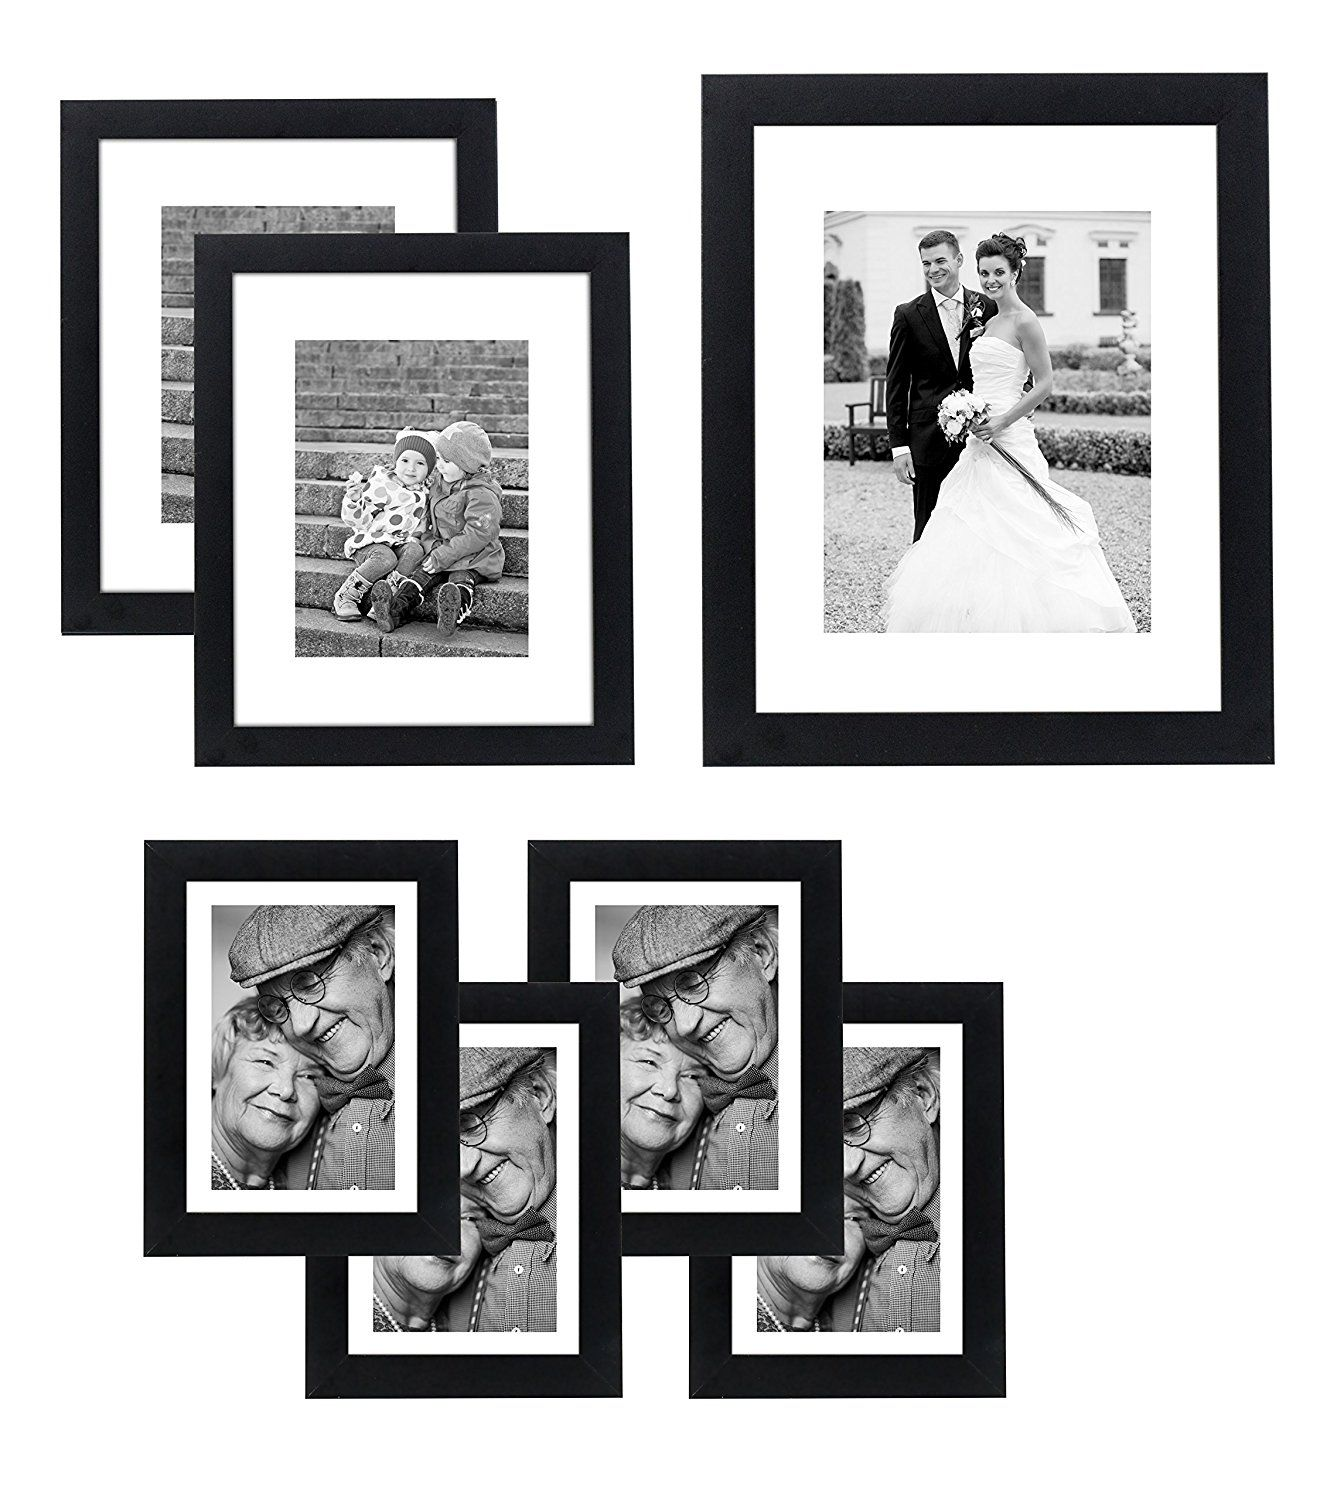 7 Piece Gallery Wall Set Includes 11x14 Inch With 8x10 Inch Matte Opening Two 8x10 Inch With 5x7 Matte Wall Frame Set Frames On Wall Picture Frame Gallery